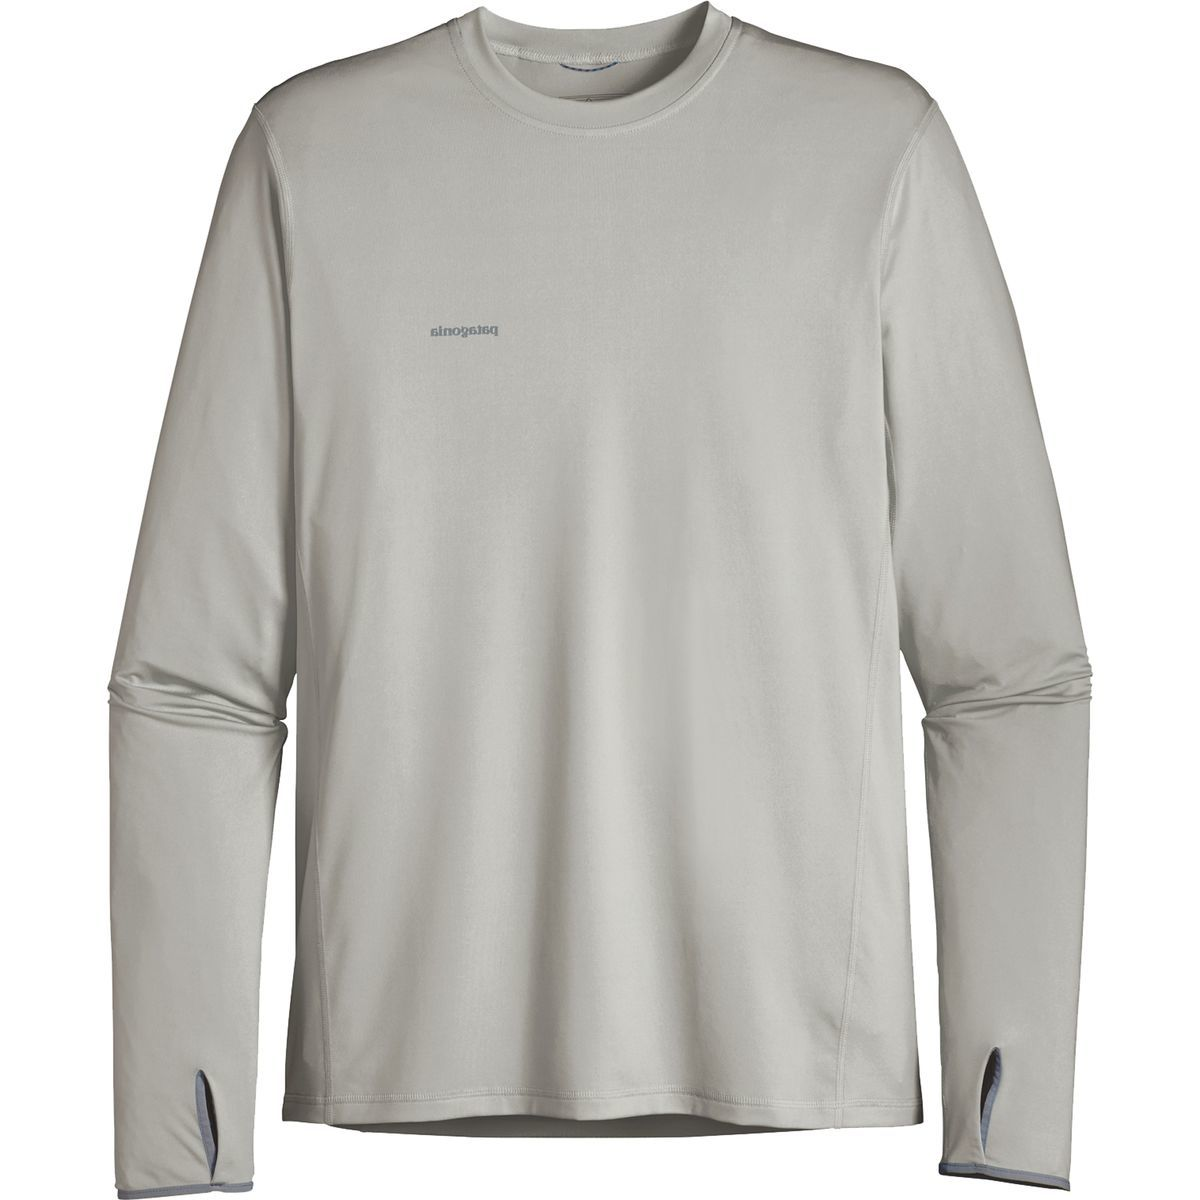 Patagonia Tropic Comfort II Long Sleeve Crew - Men's